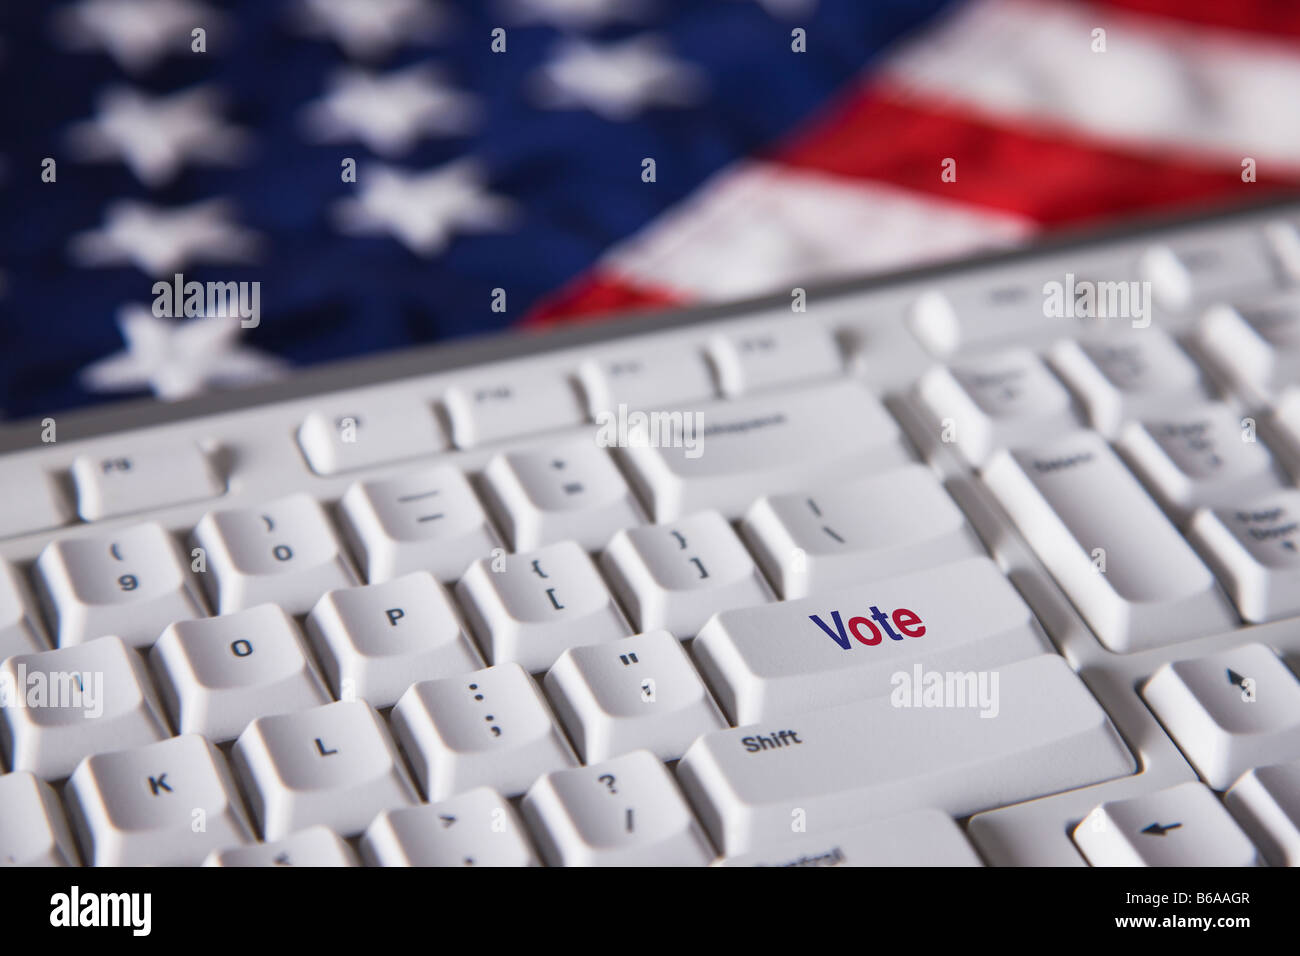 Computer keyboard with vote key - Stock Image